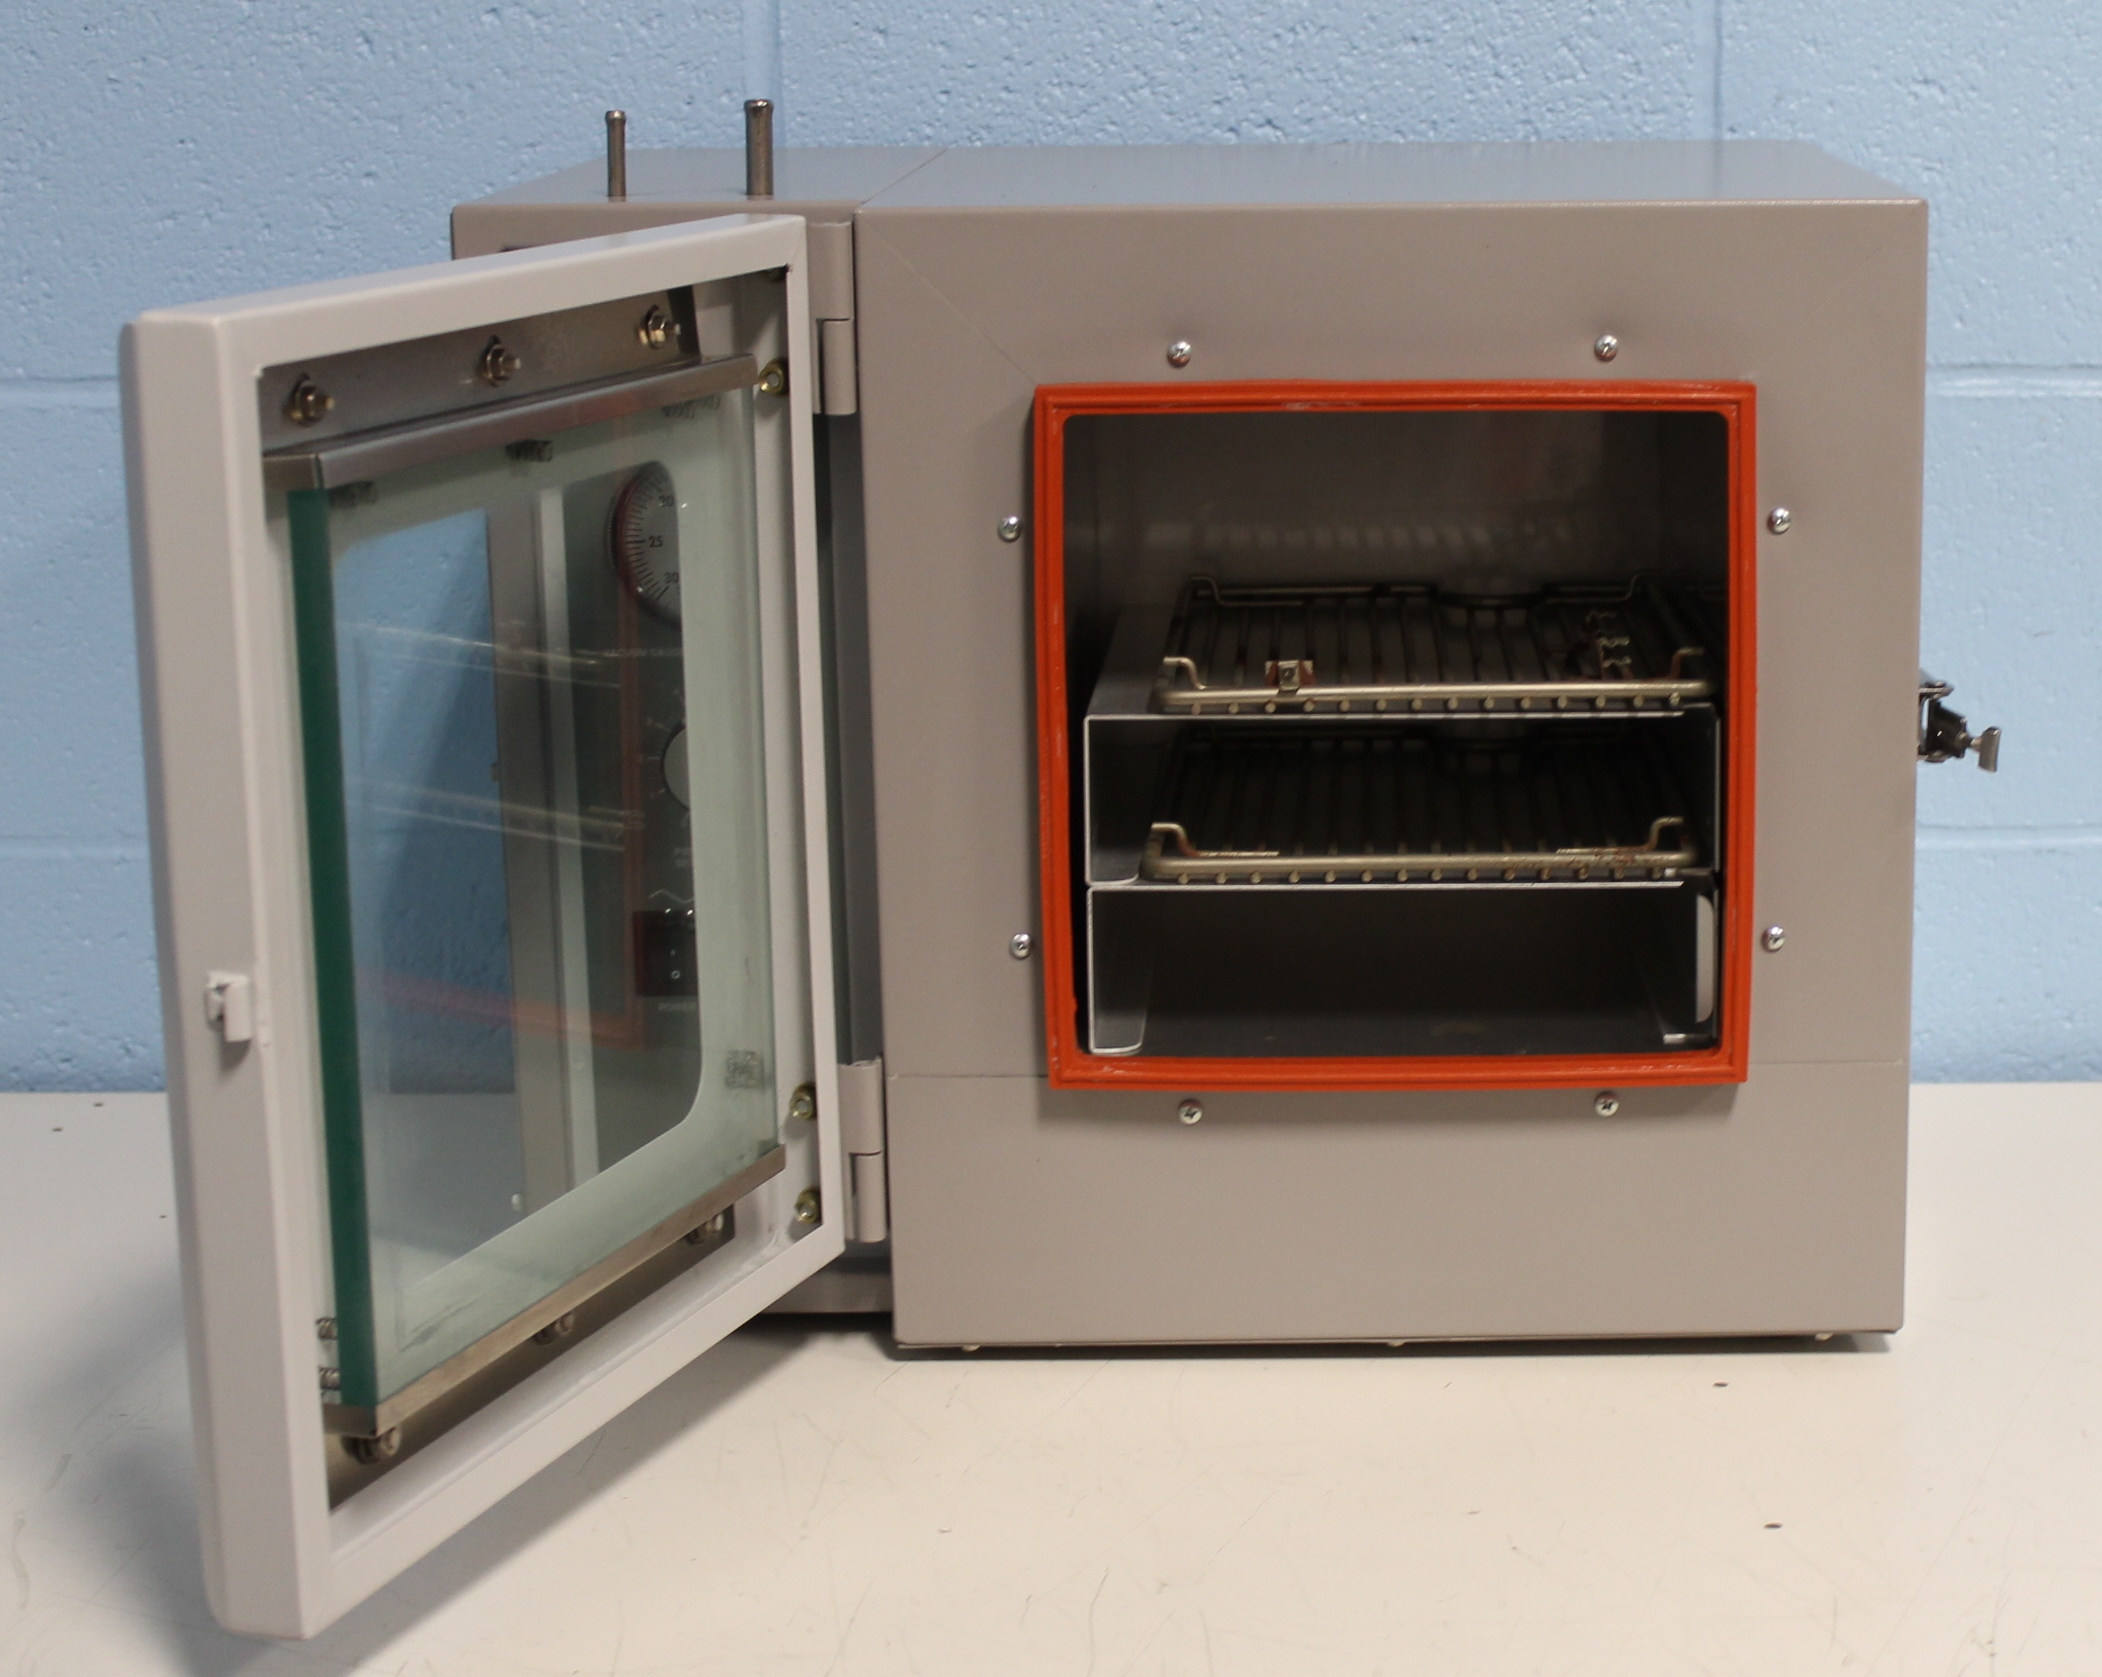 Refurbished VWR Scientific 1410 Vacuum Oven